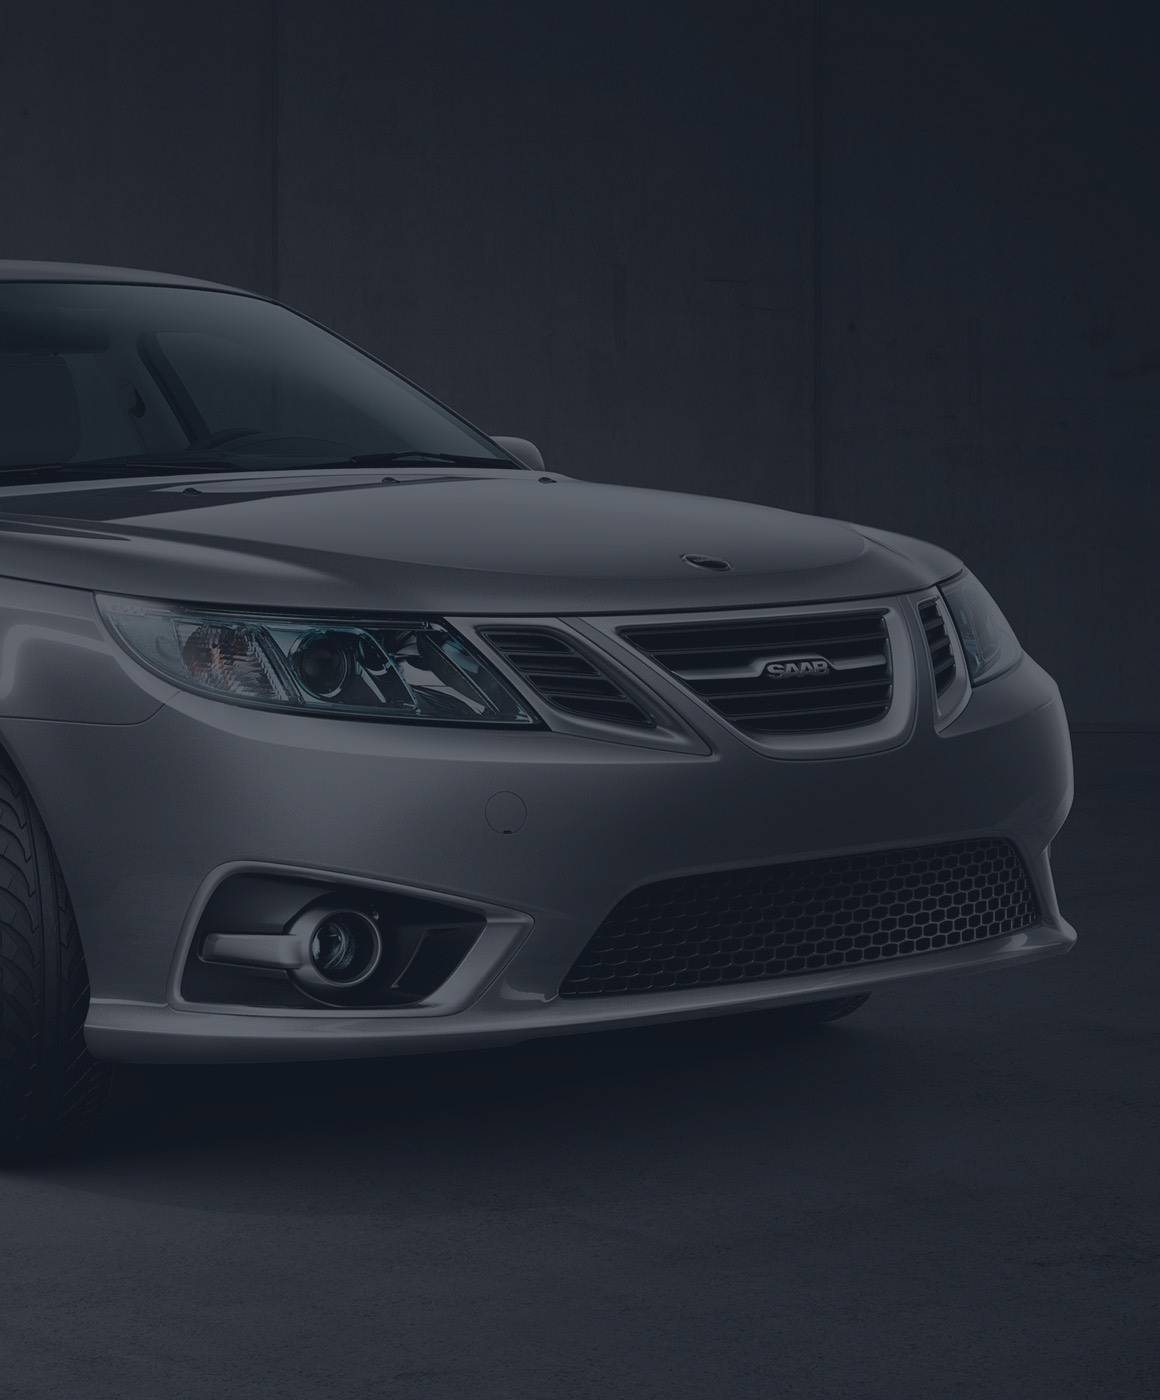 Compare Saab insurance costs for all models